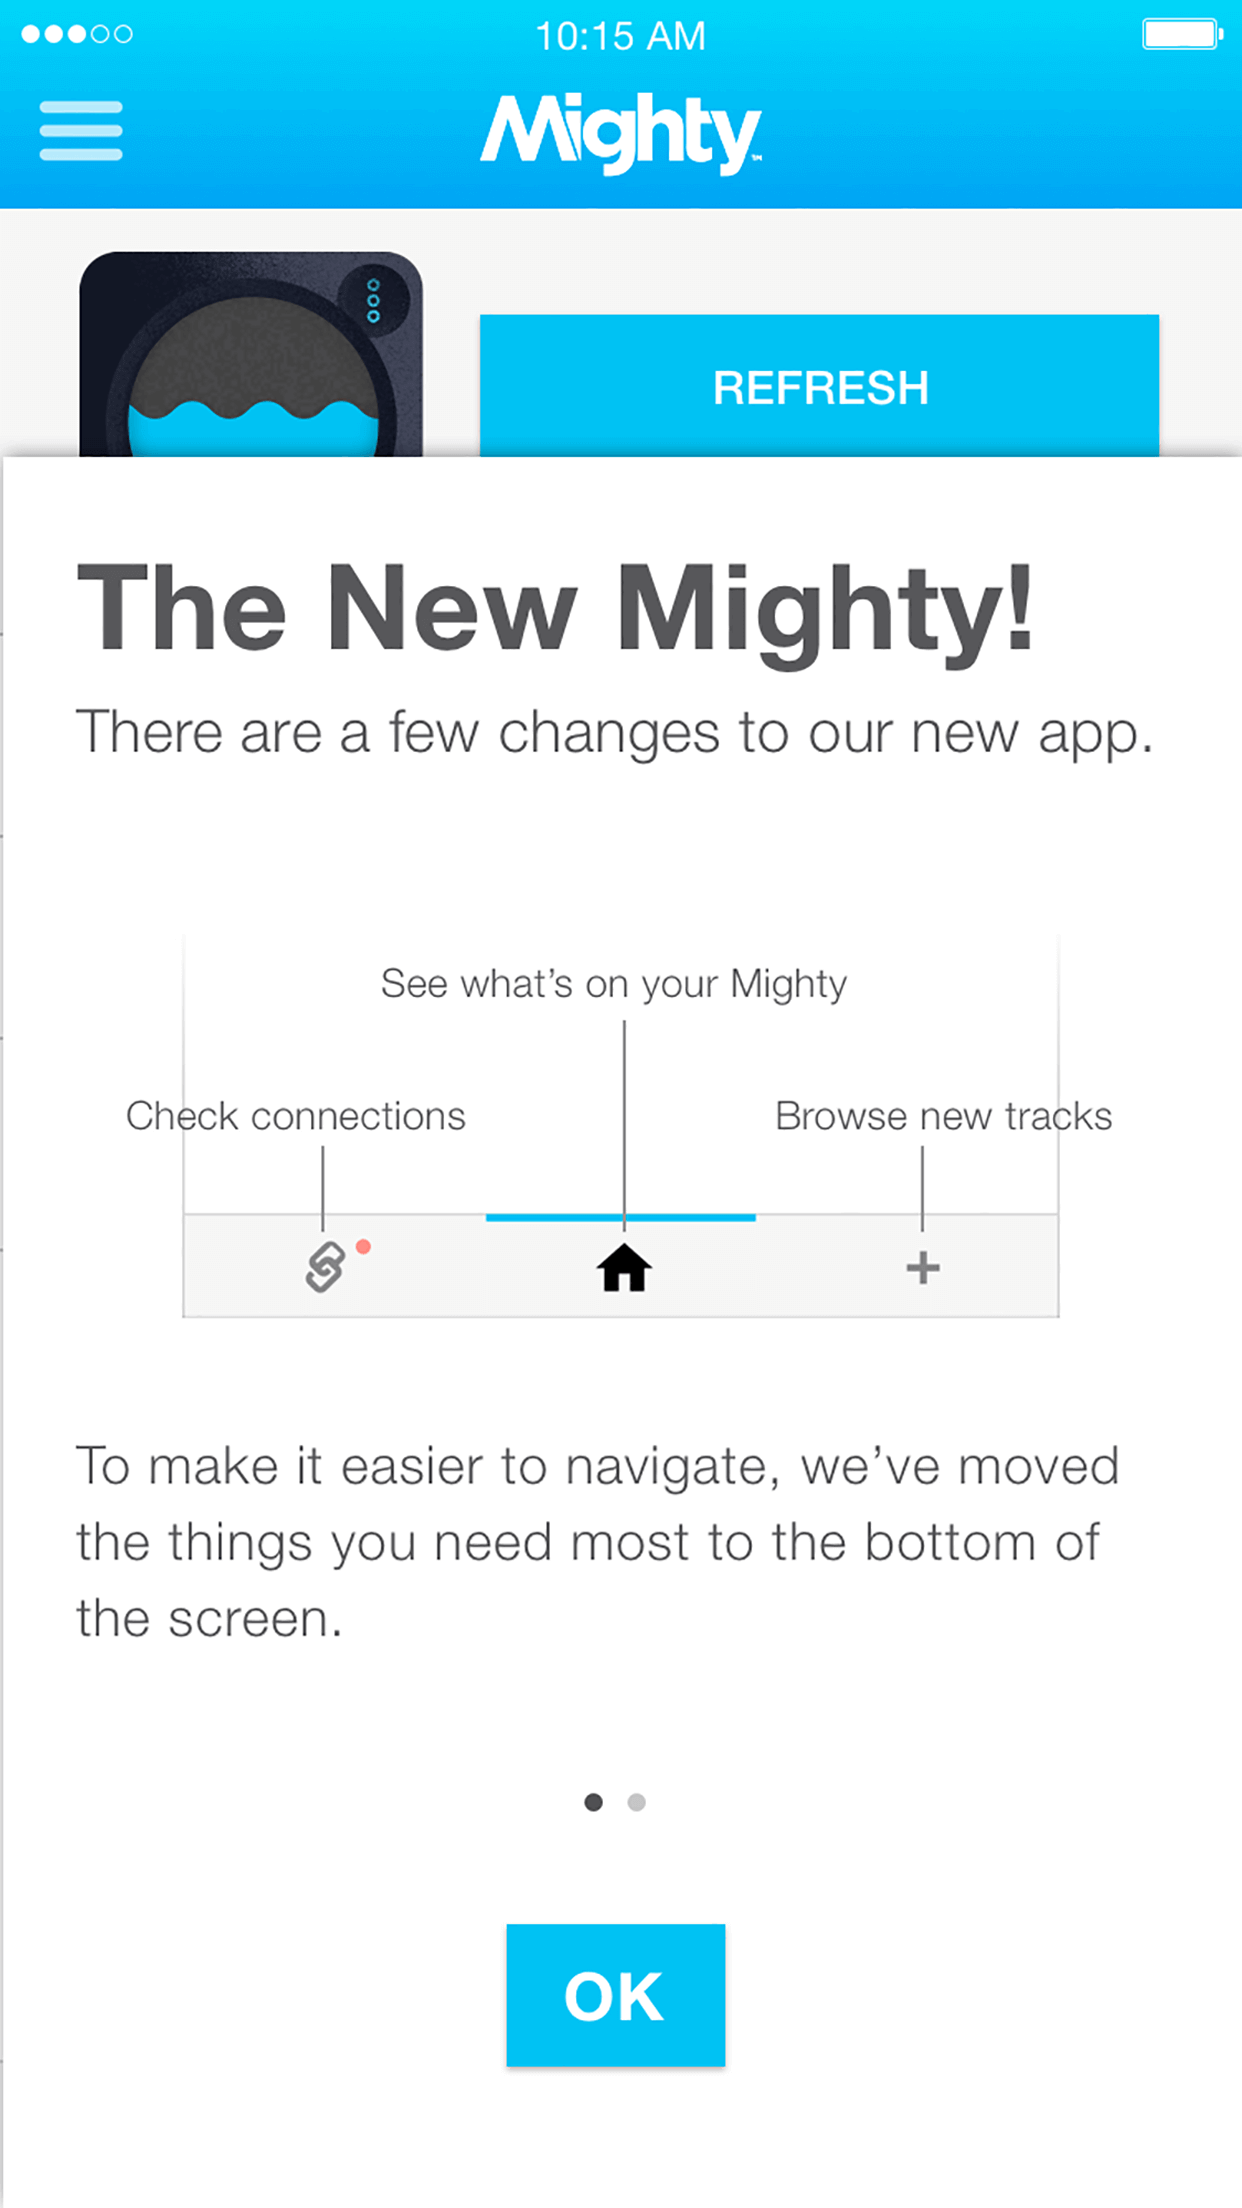 Mighty supports easy access to Spotify playalists such as Discover Weekly, Release Radar, Your Time Capsule, and more!